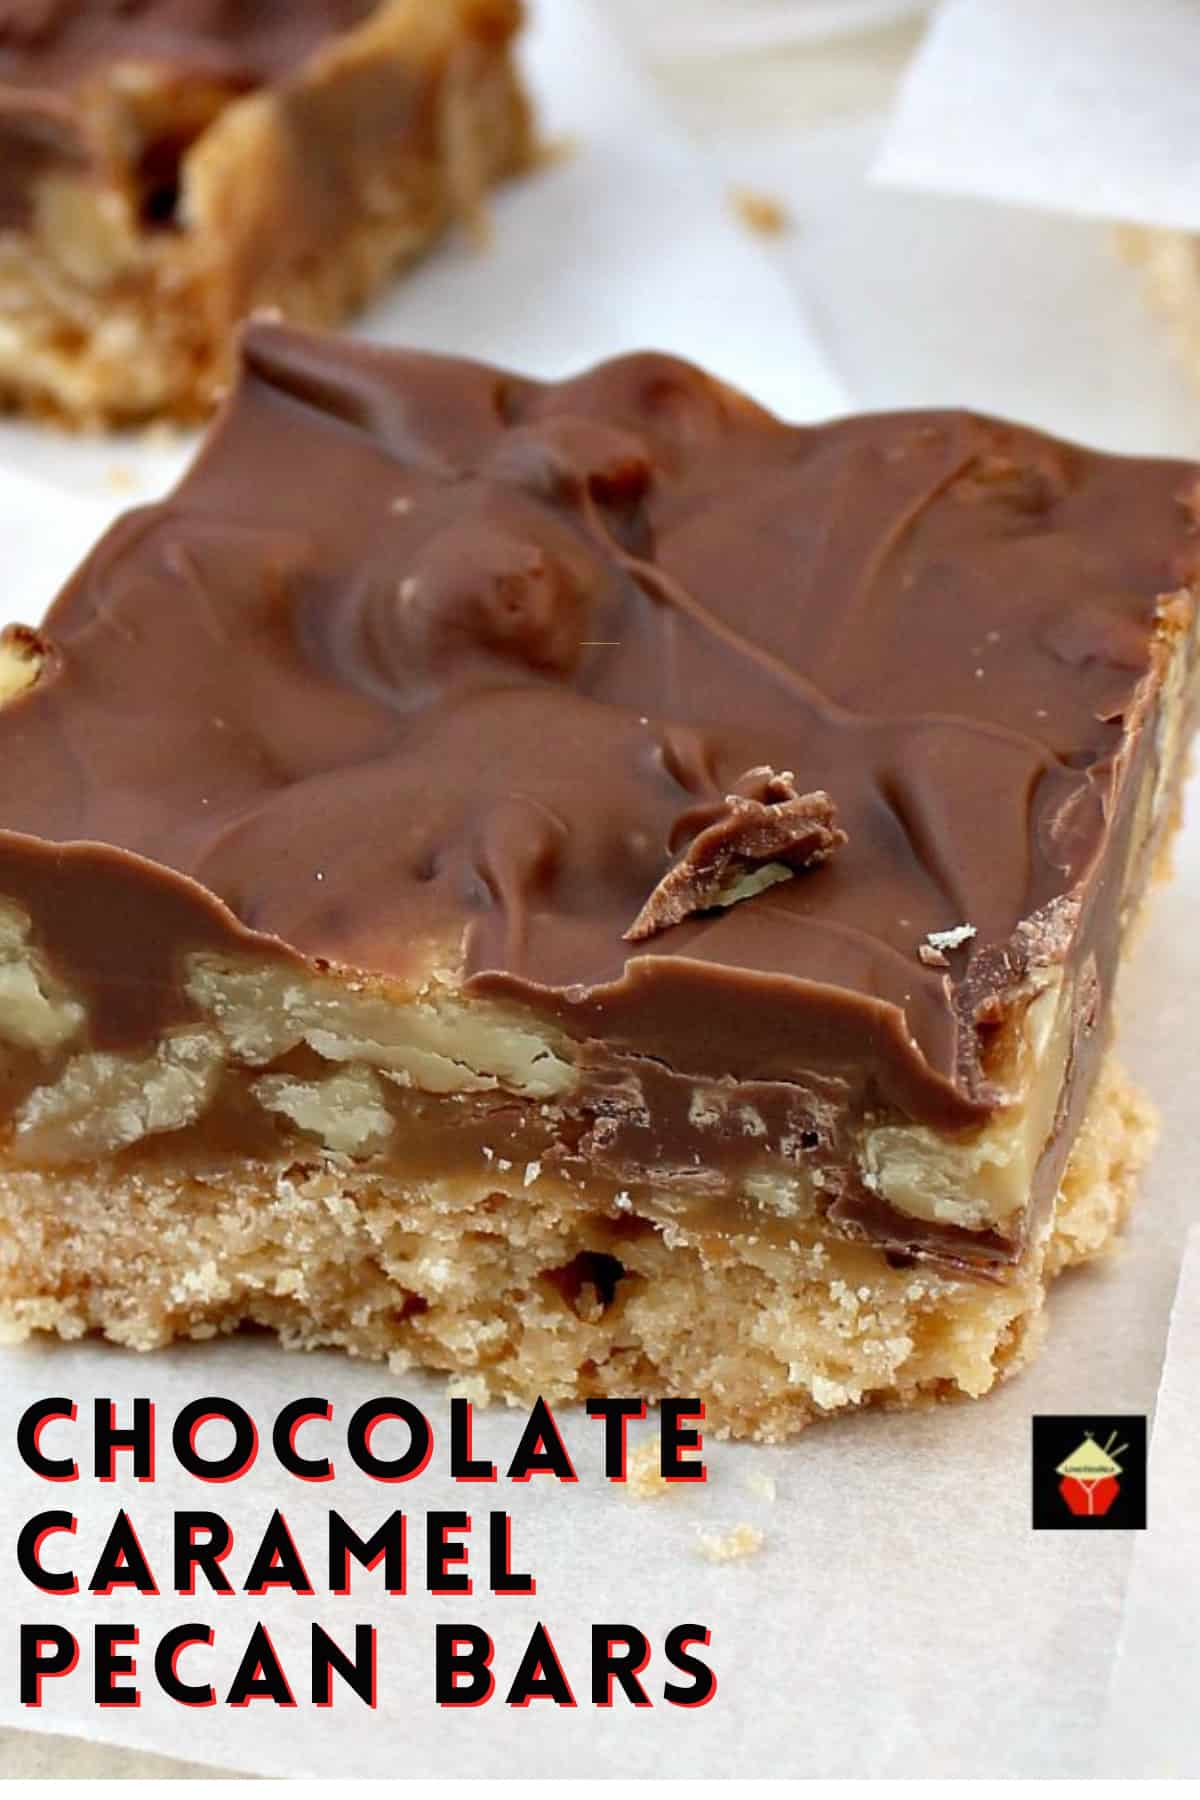 Chocolate Caramel Pecan Bars. These are so addictive! Easy to make and always popular! Flexible so you can use your favorite chocolate, like milk, dark, white and also use whatever nuts you love!